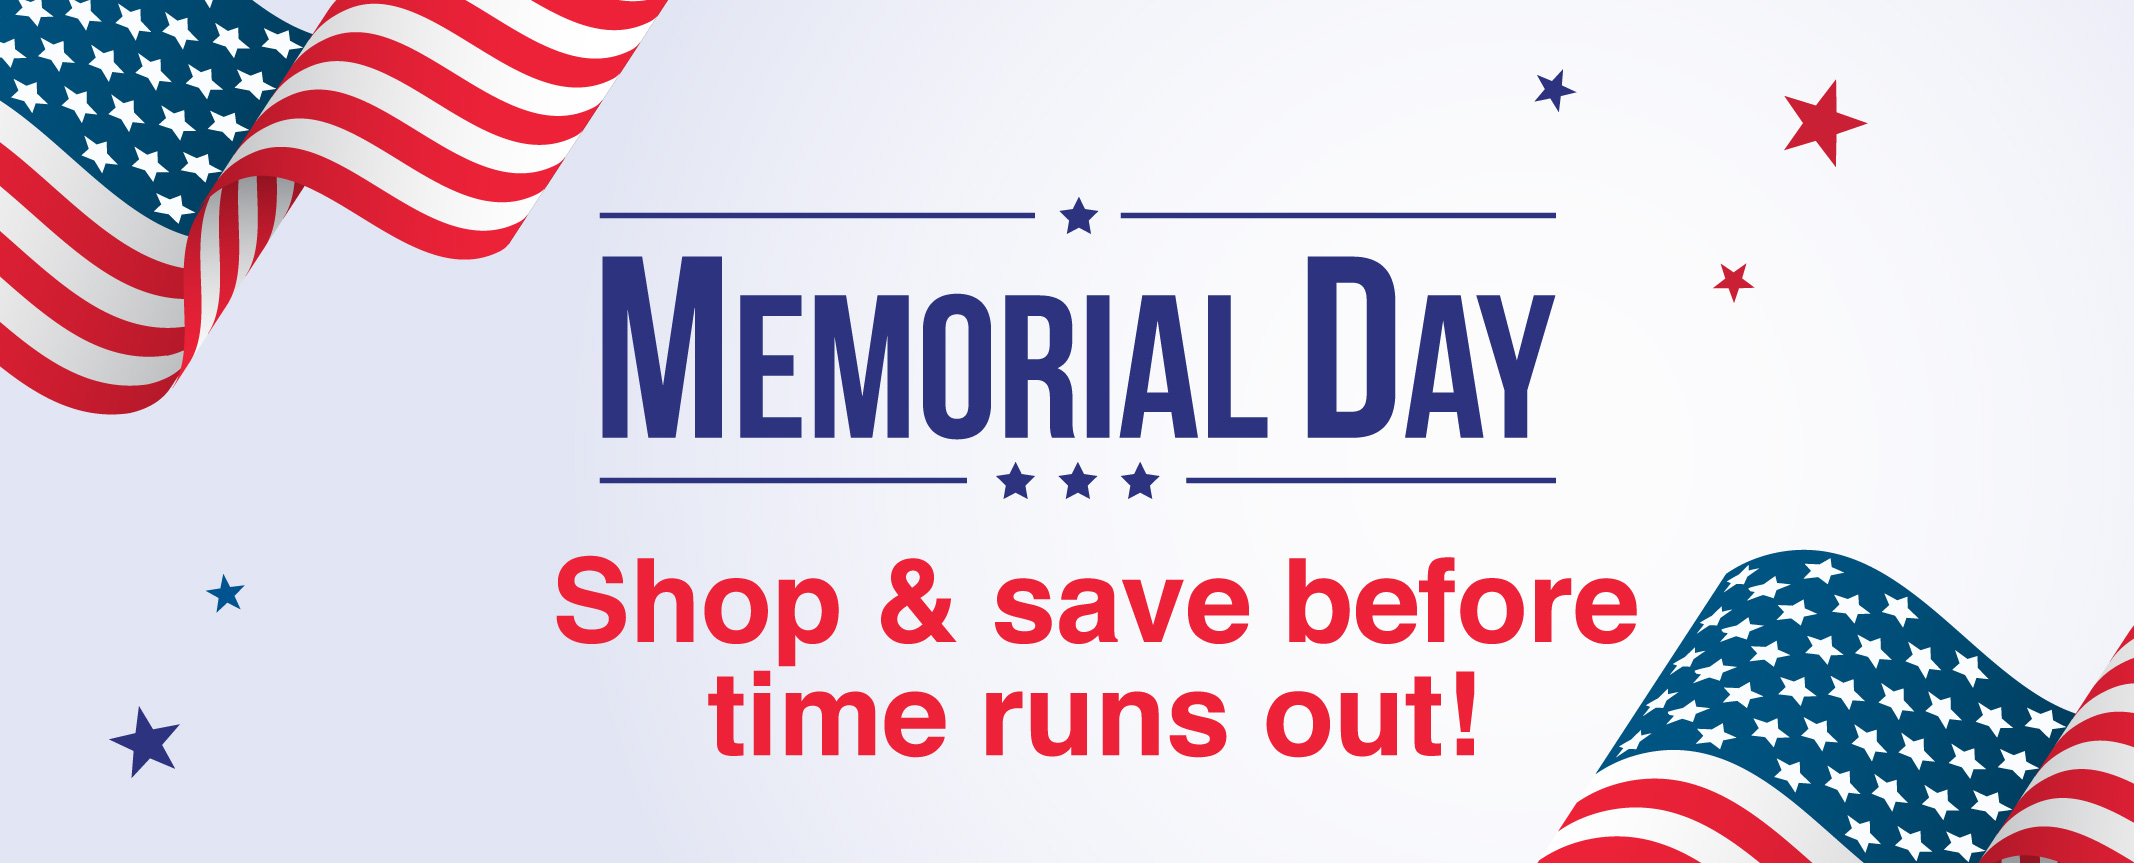 Memorial Day Savings - Limited Time